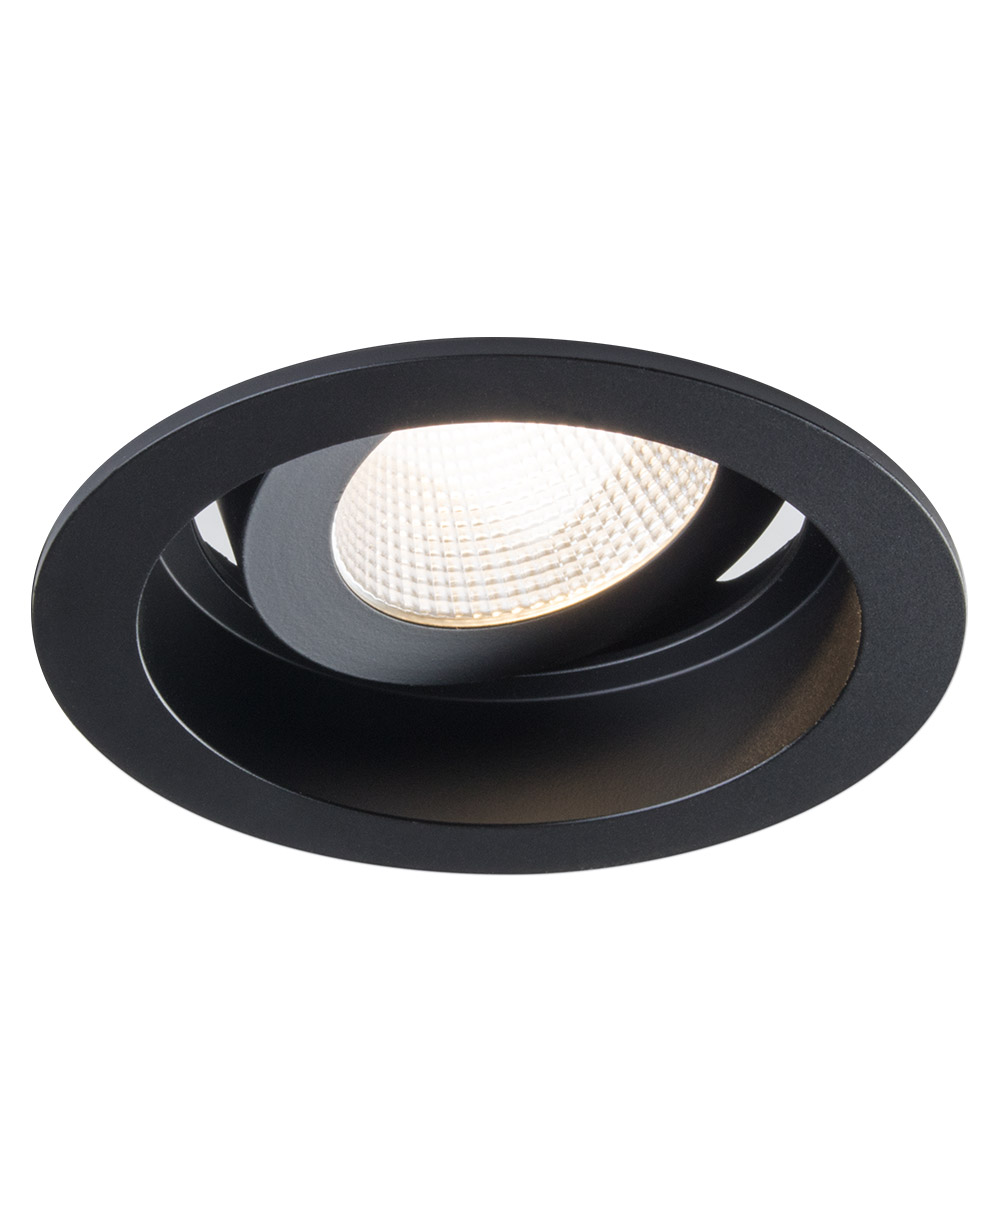 SIGMA 2 Round Regressed Gimbal LED Fixture